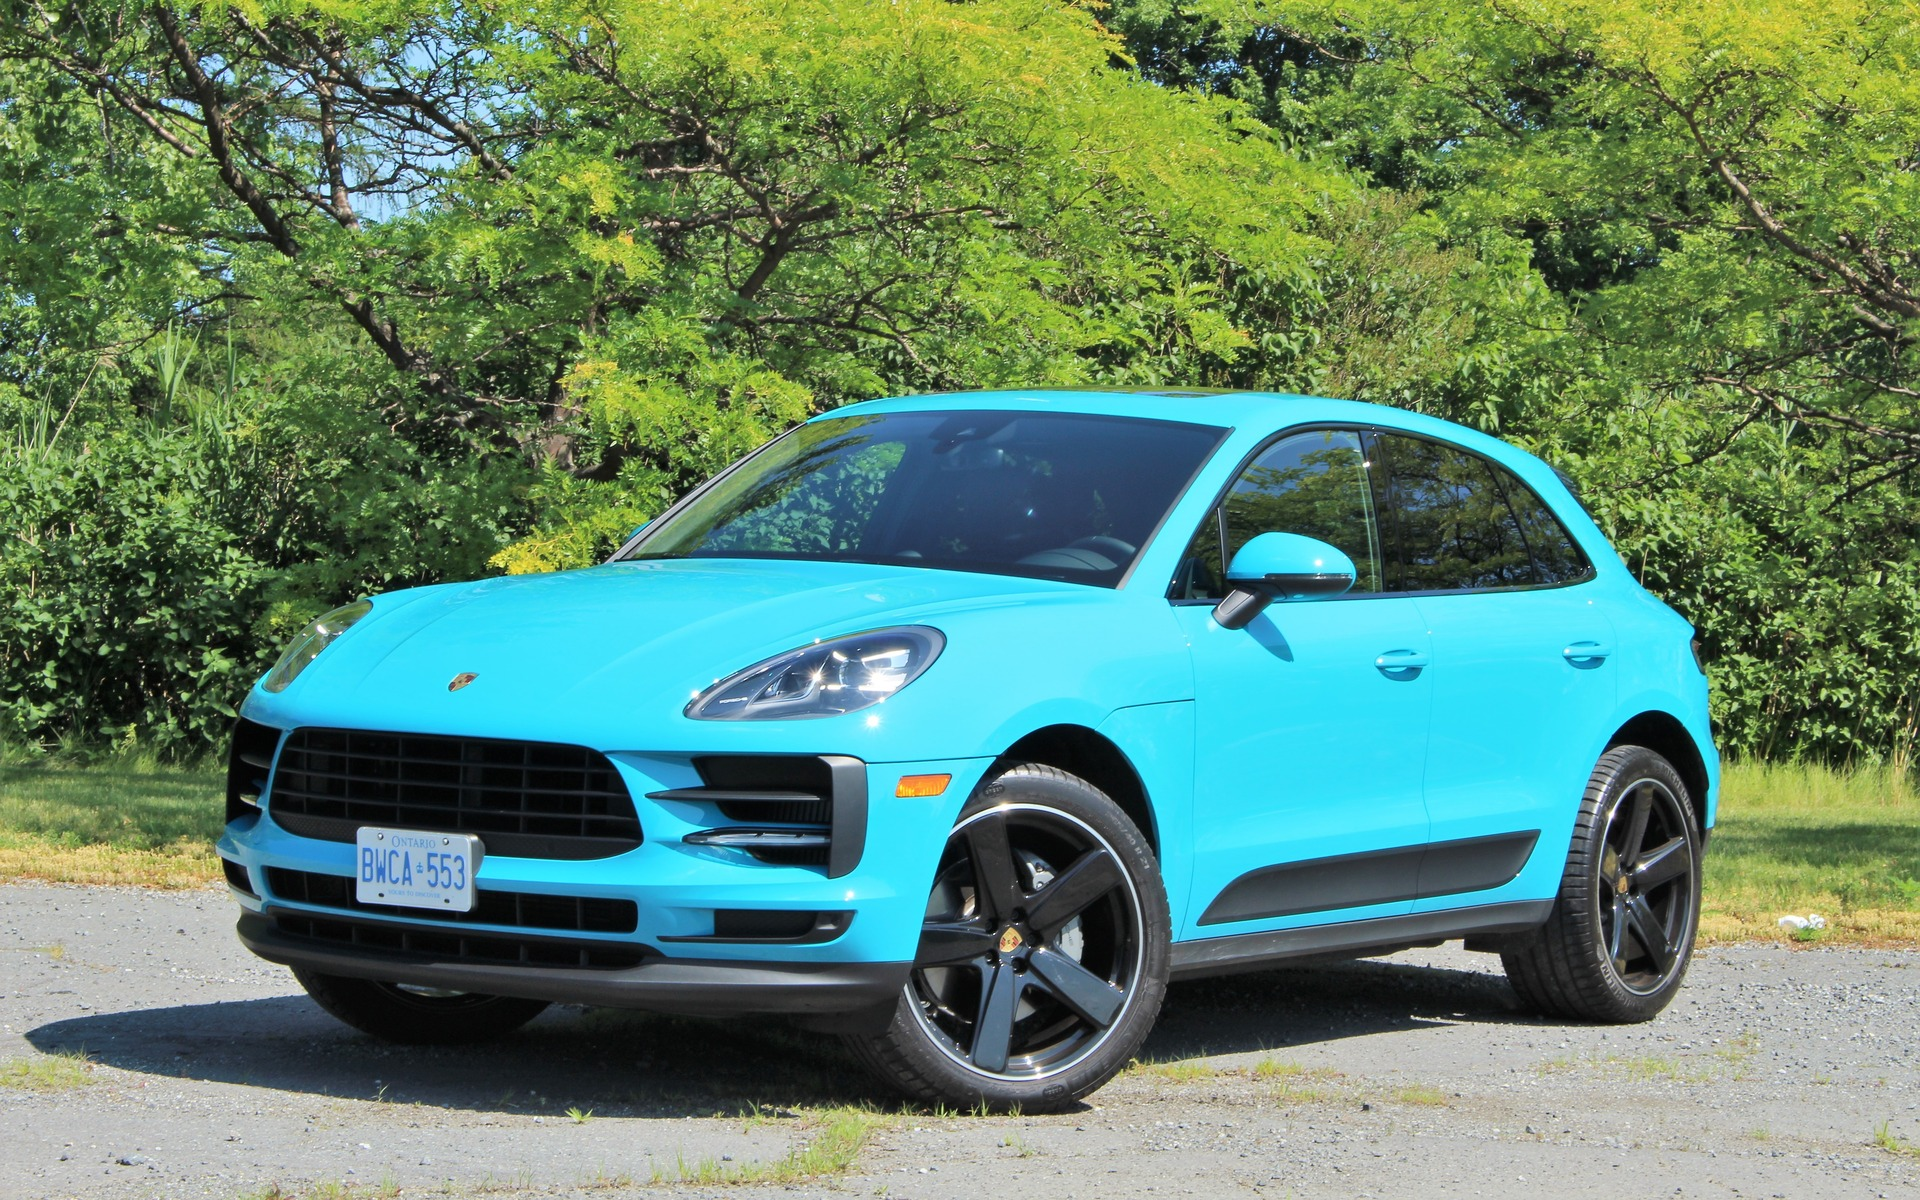 2019 Porsche Macan Tears Of Joy Tears Of Sadness The Car Guide